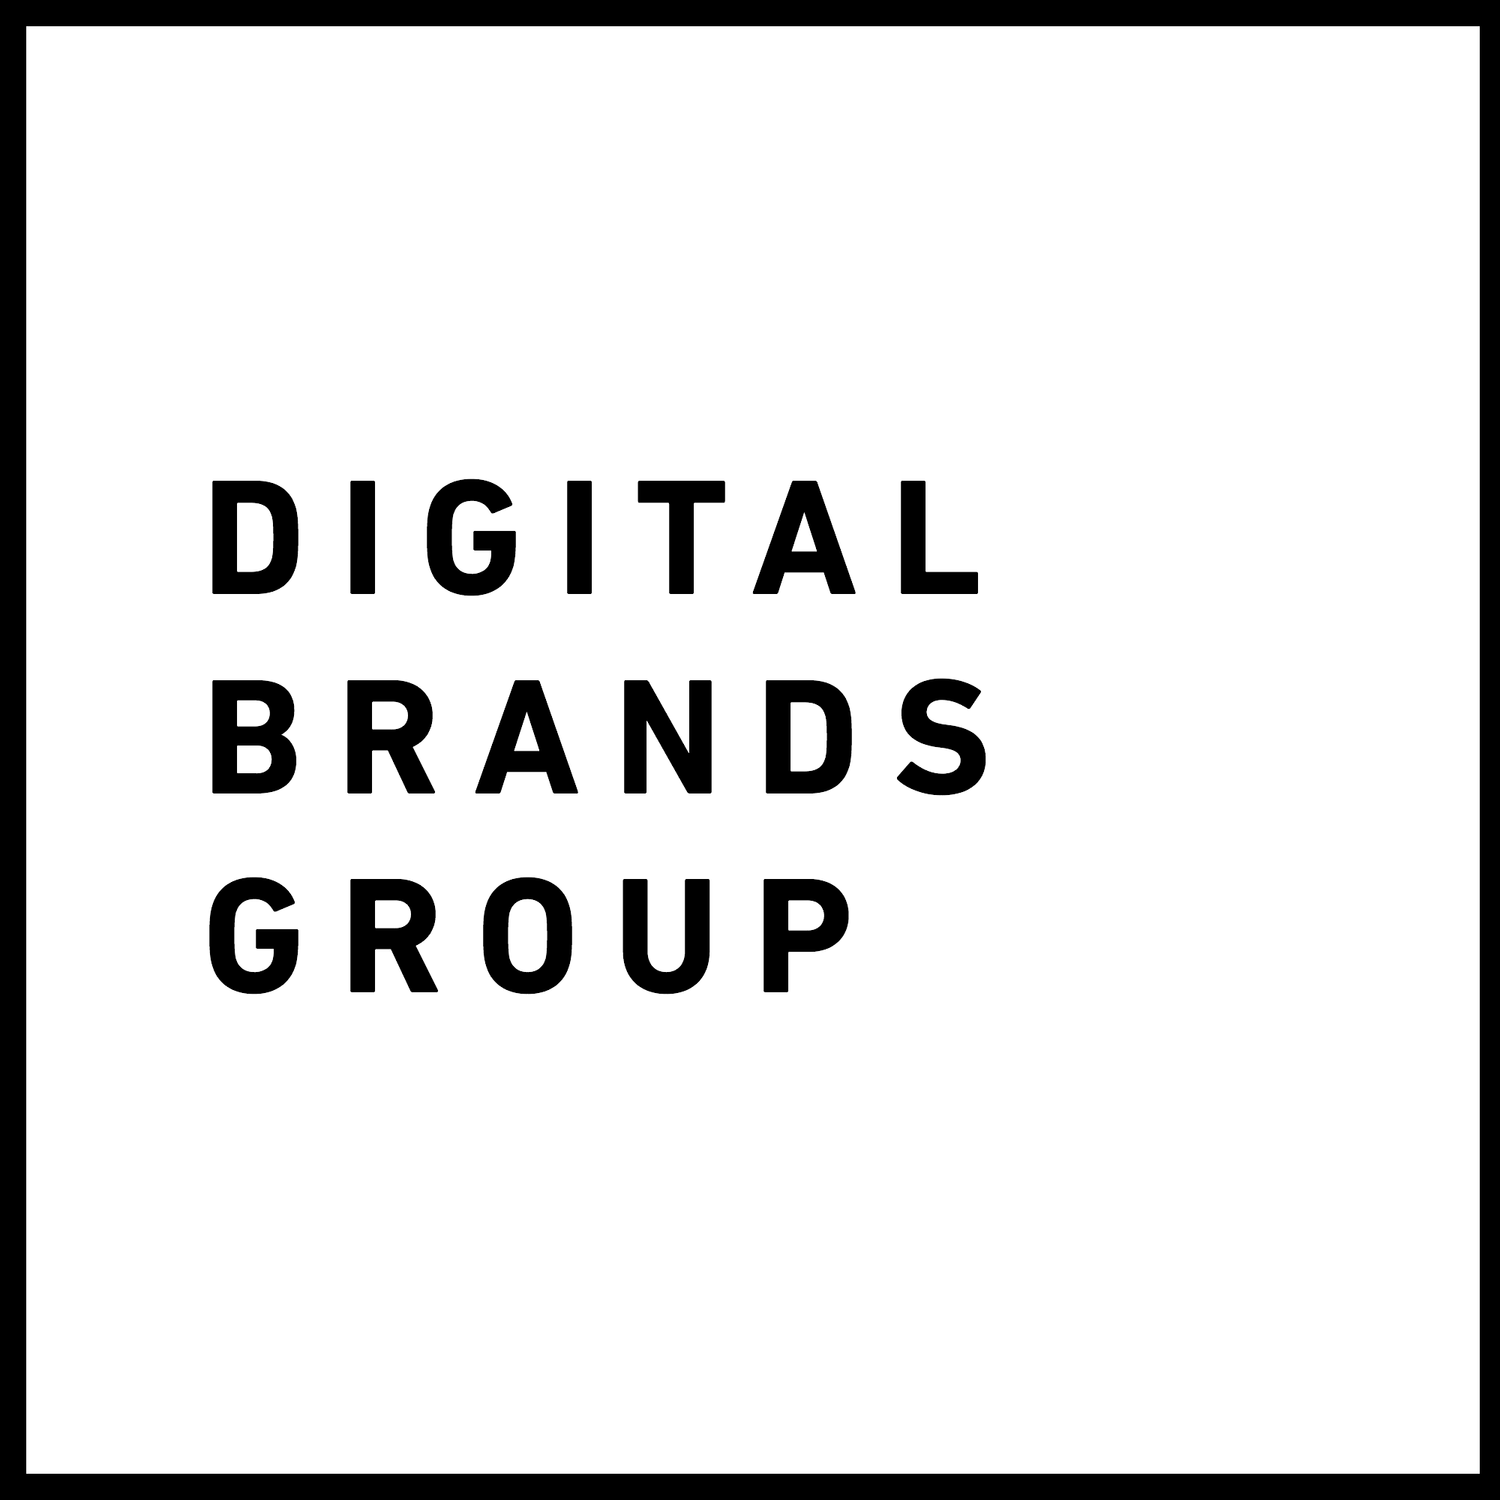 Digital Brands Group